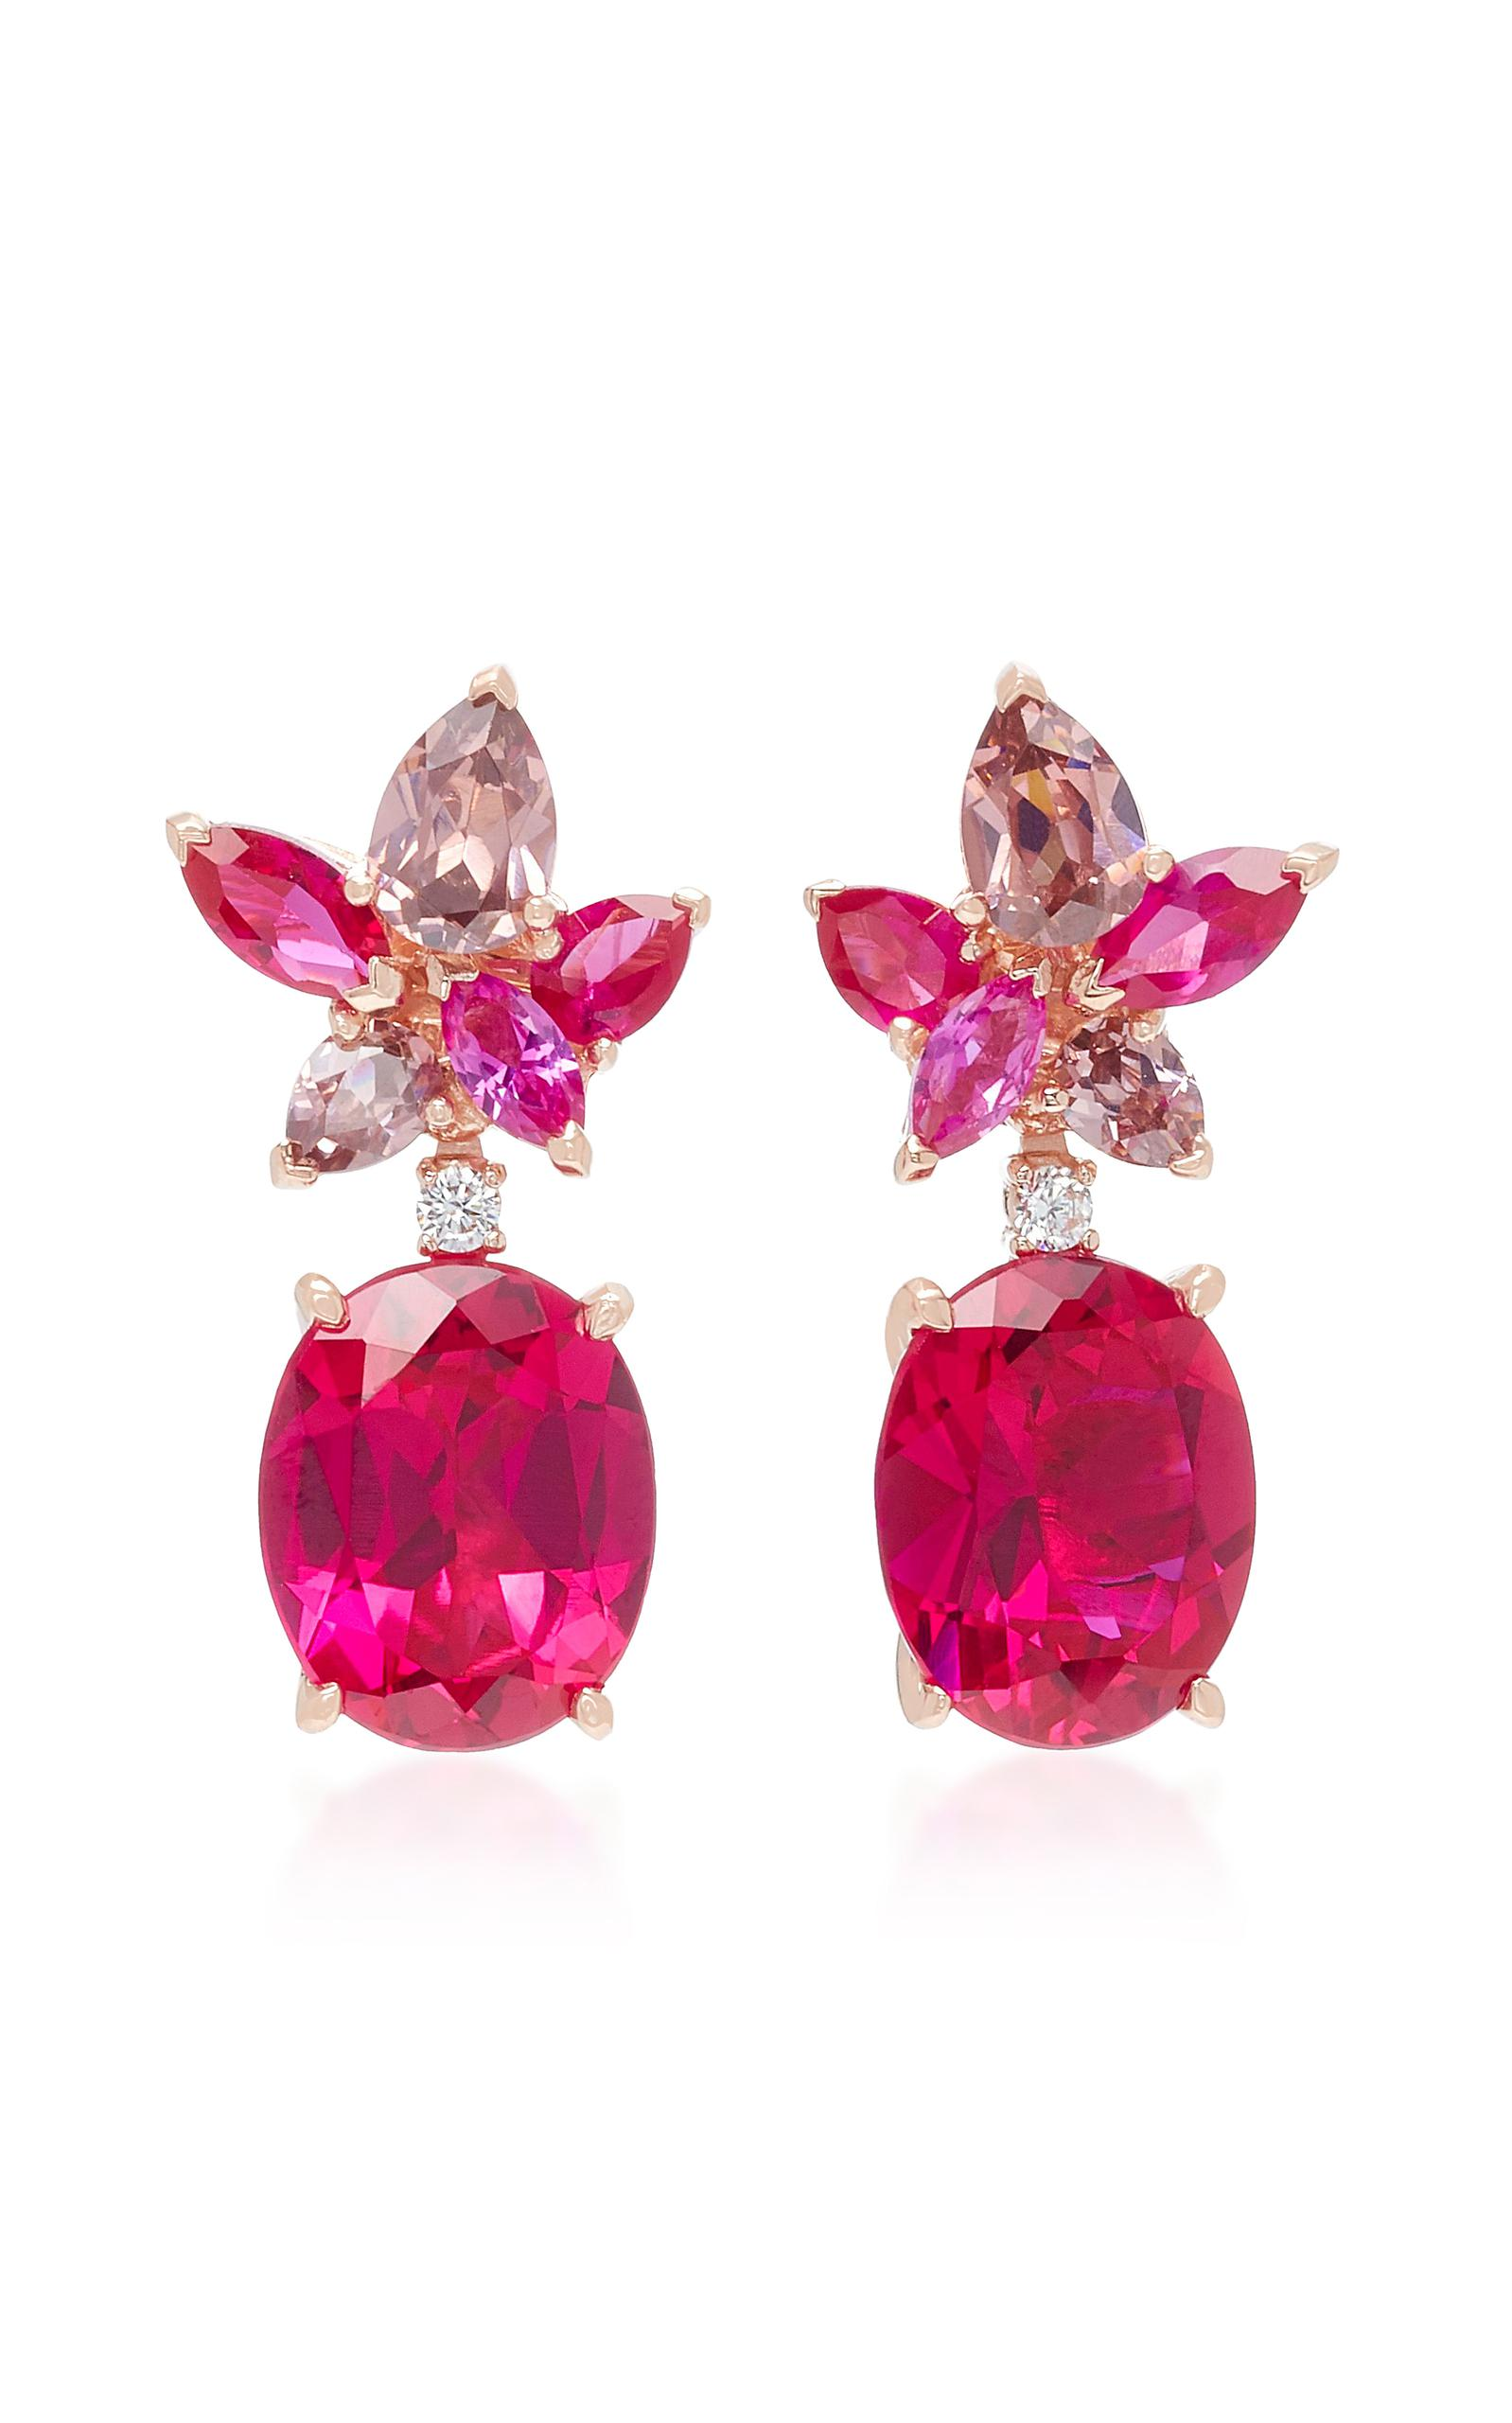 Mo Exclusif: Rubis Coralbell Boucles D'oreilles Anabela Chan SL4qc